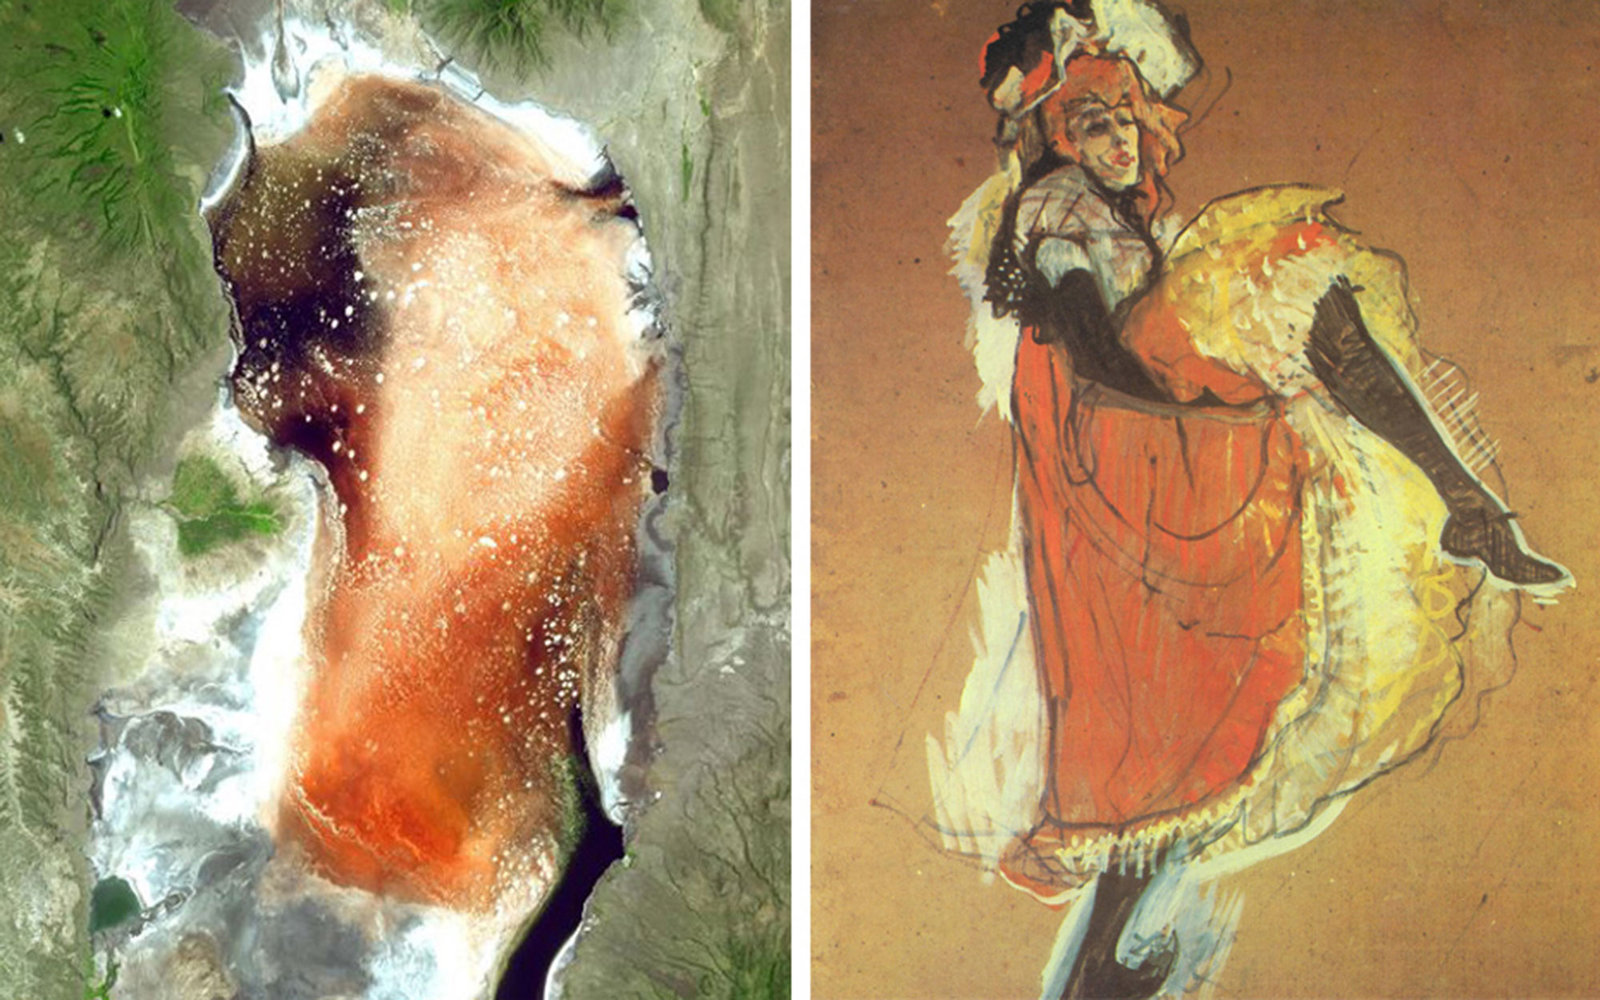 Pictured left: Lake Natron in Tanzania, on March 8, 2003; Pictured right: Henri De Toulouse-Lautrec, Jane Avril Dancing, 1893